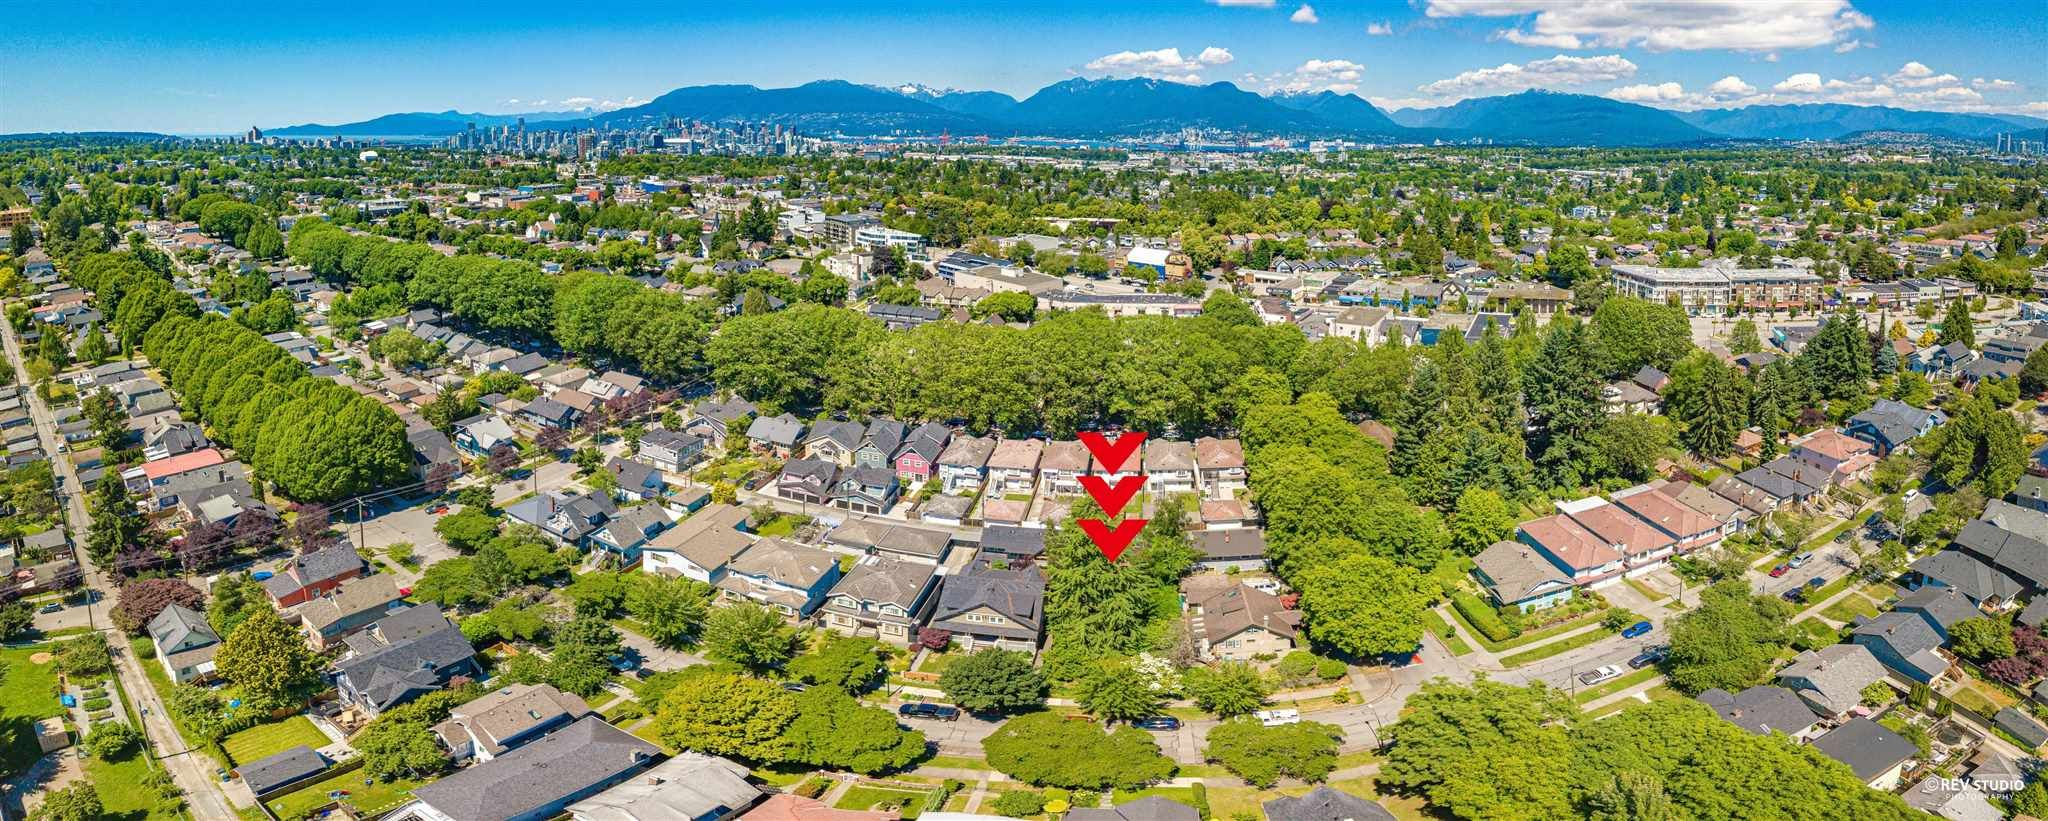 Main Photo: 1075 E 22ND Avenue in Vancouver: Fraser VE House for sale (Vancouver East)  : MLS®# R2596219